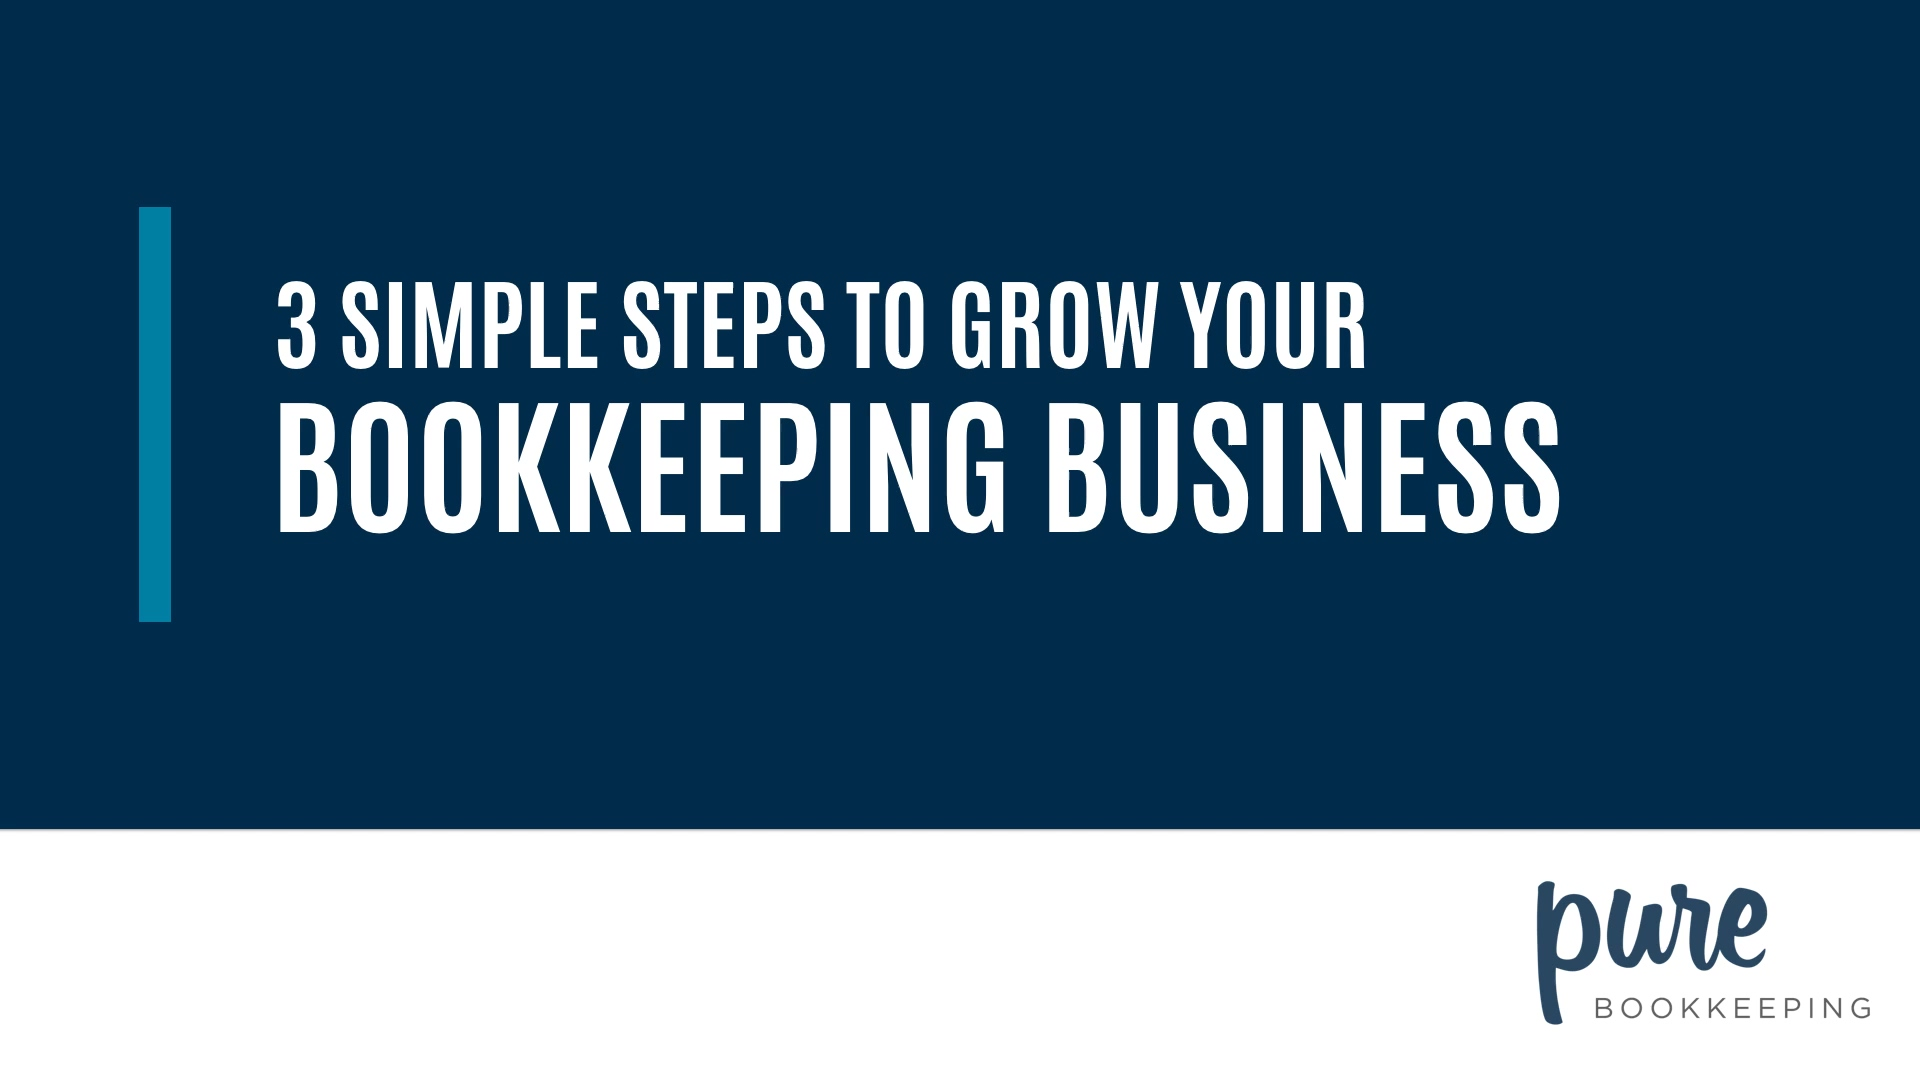 na-3-simple-steps-to-a-successful-bookkeeping-business-1-intro